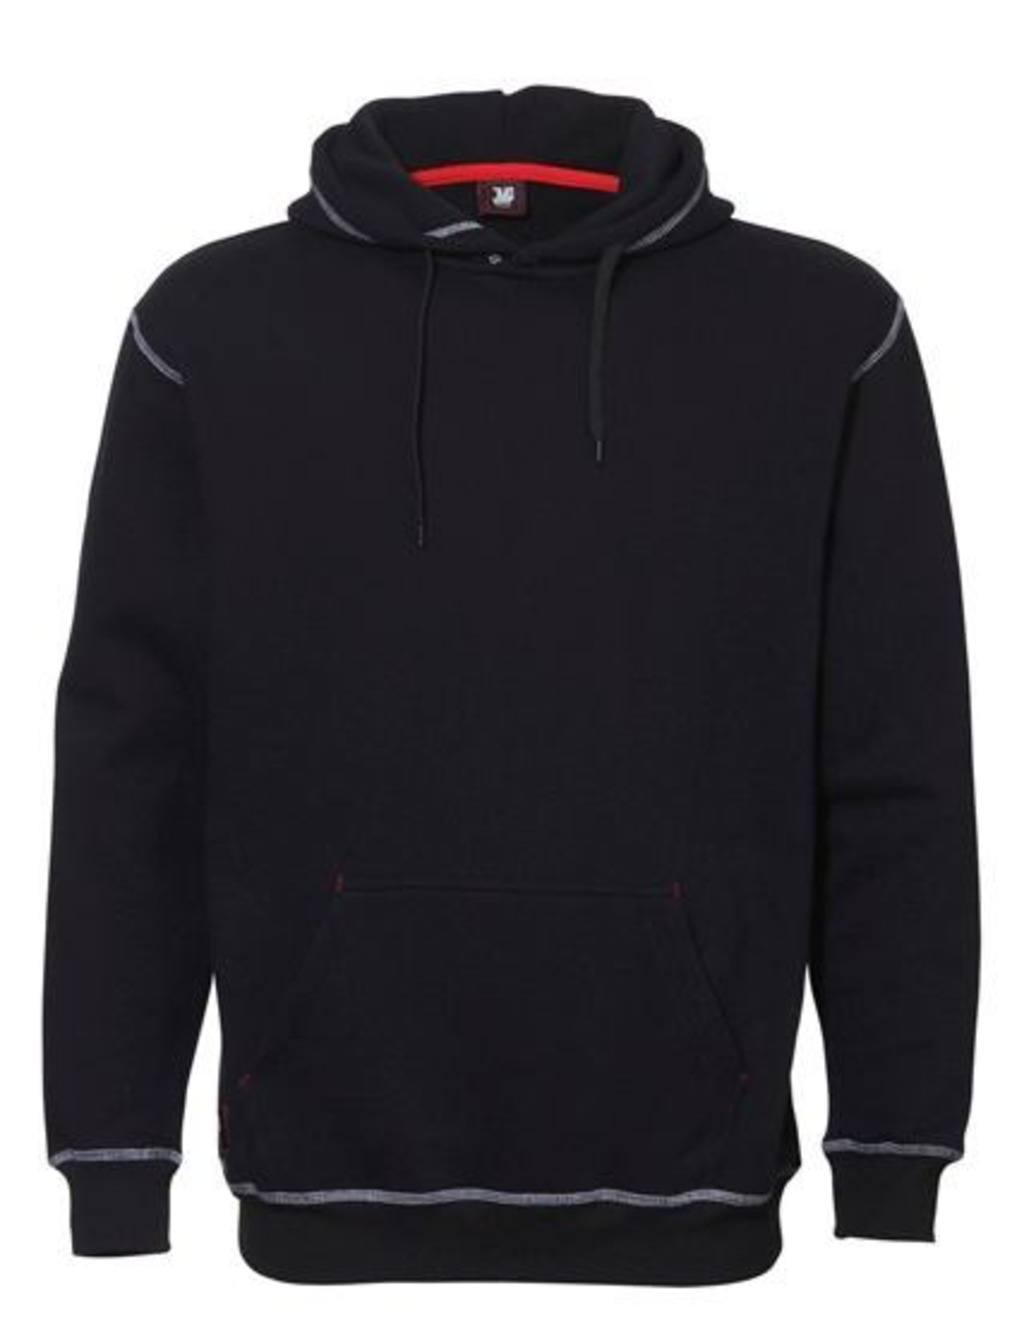 ILLINOIS Hooded Sweater